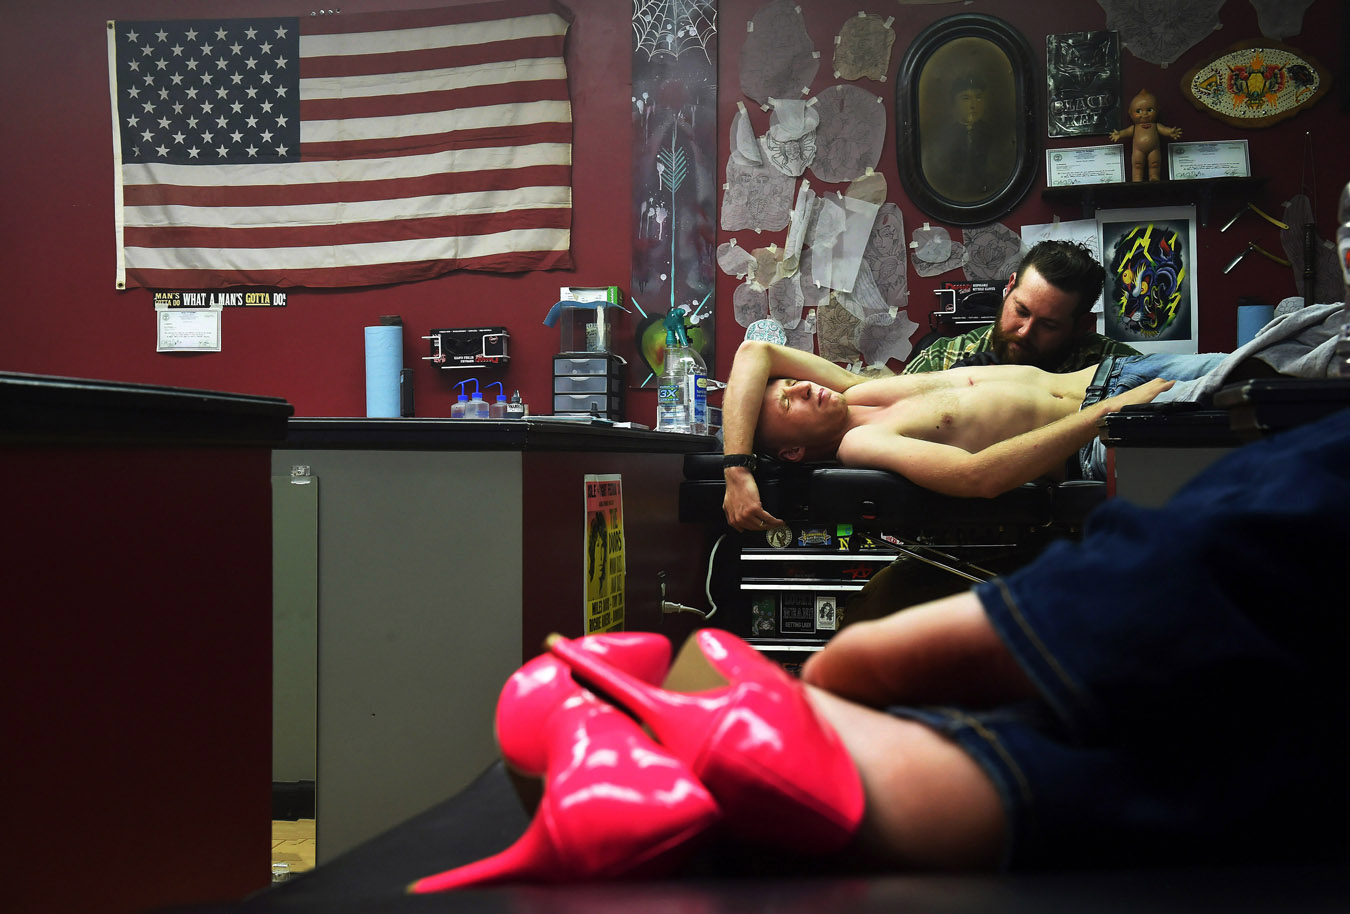 Steve Cherry, top right, or Riff Raff as he is known tattoos SPC Caleb McKinnon as he and his wife, Savannah McKinnon, bottom, get similar tattoos at Black Kat Tattoo on Saturday November 08, 2014 in Clarksville, TN.  McKinnon was deploying to Afghanistan the next day from Fort Campbell.  (Photo by Matt McClain/ The Washington Post)